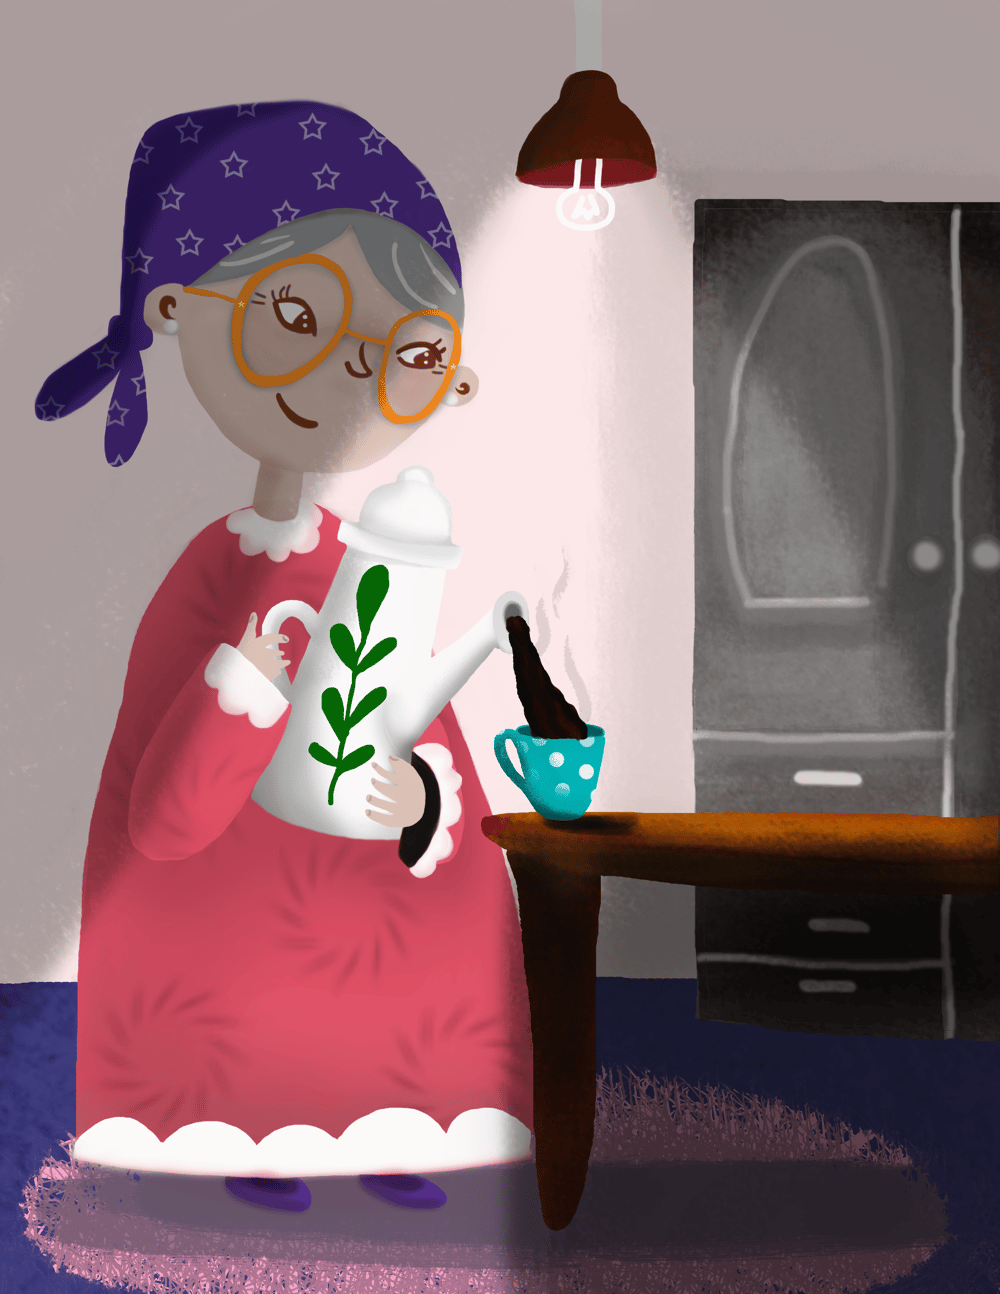 Oma having a cuppa tea - image 1 - student project